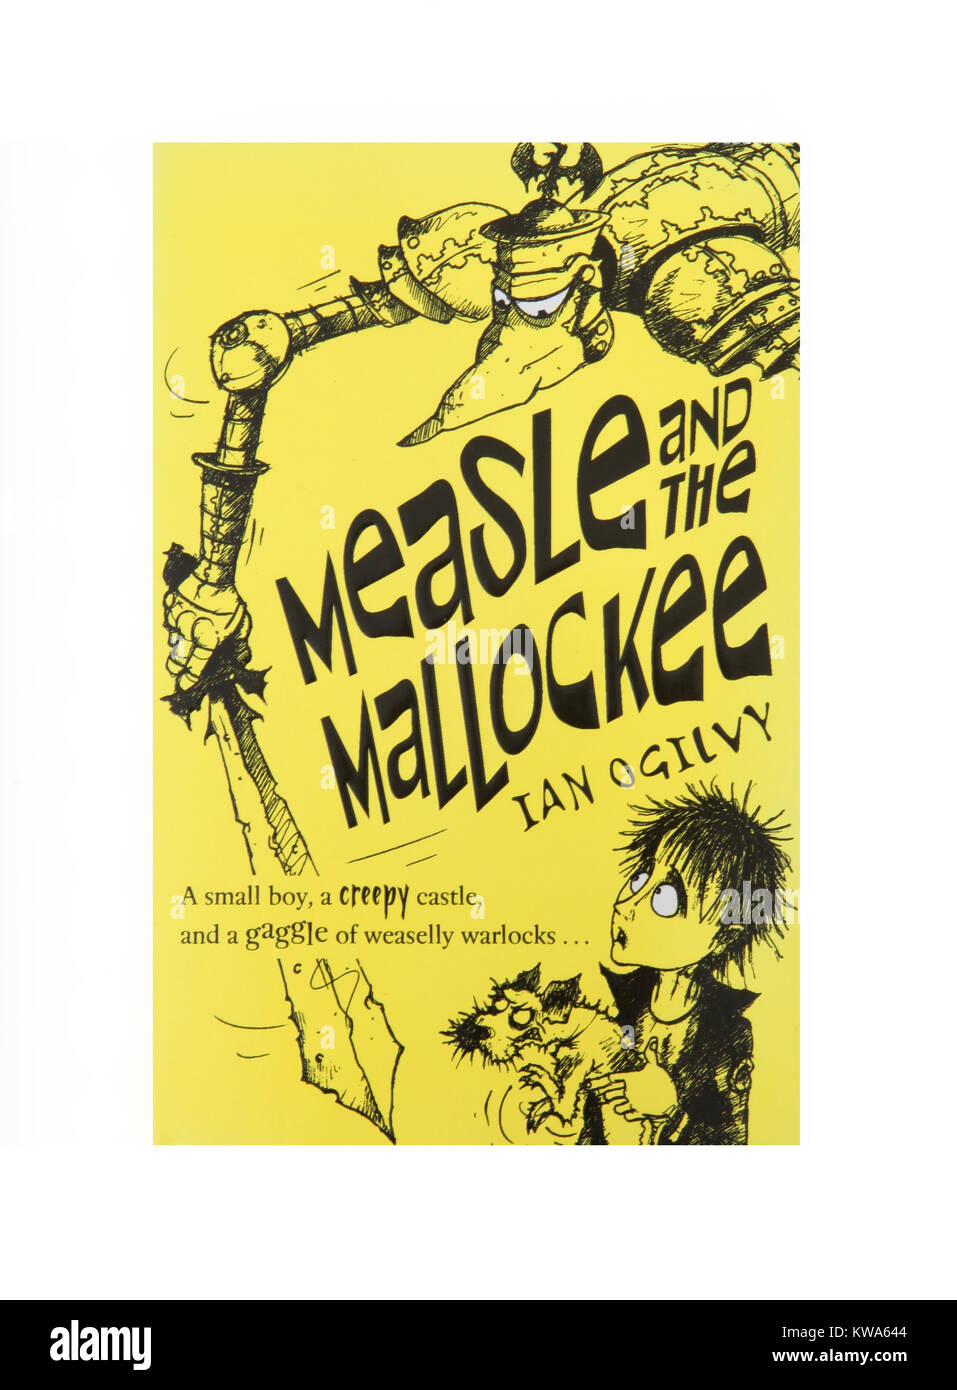 The book Measle and the Mallockee by Ian Ogilvy - Stock Image